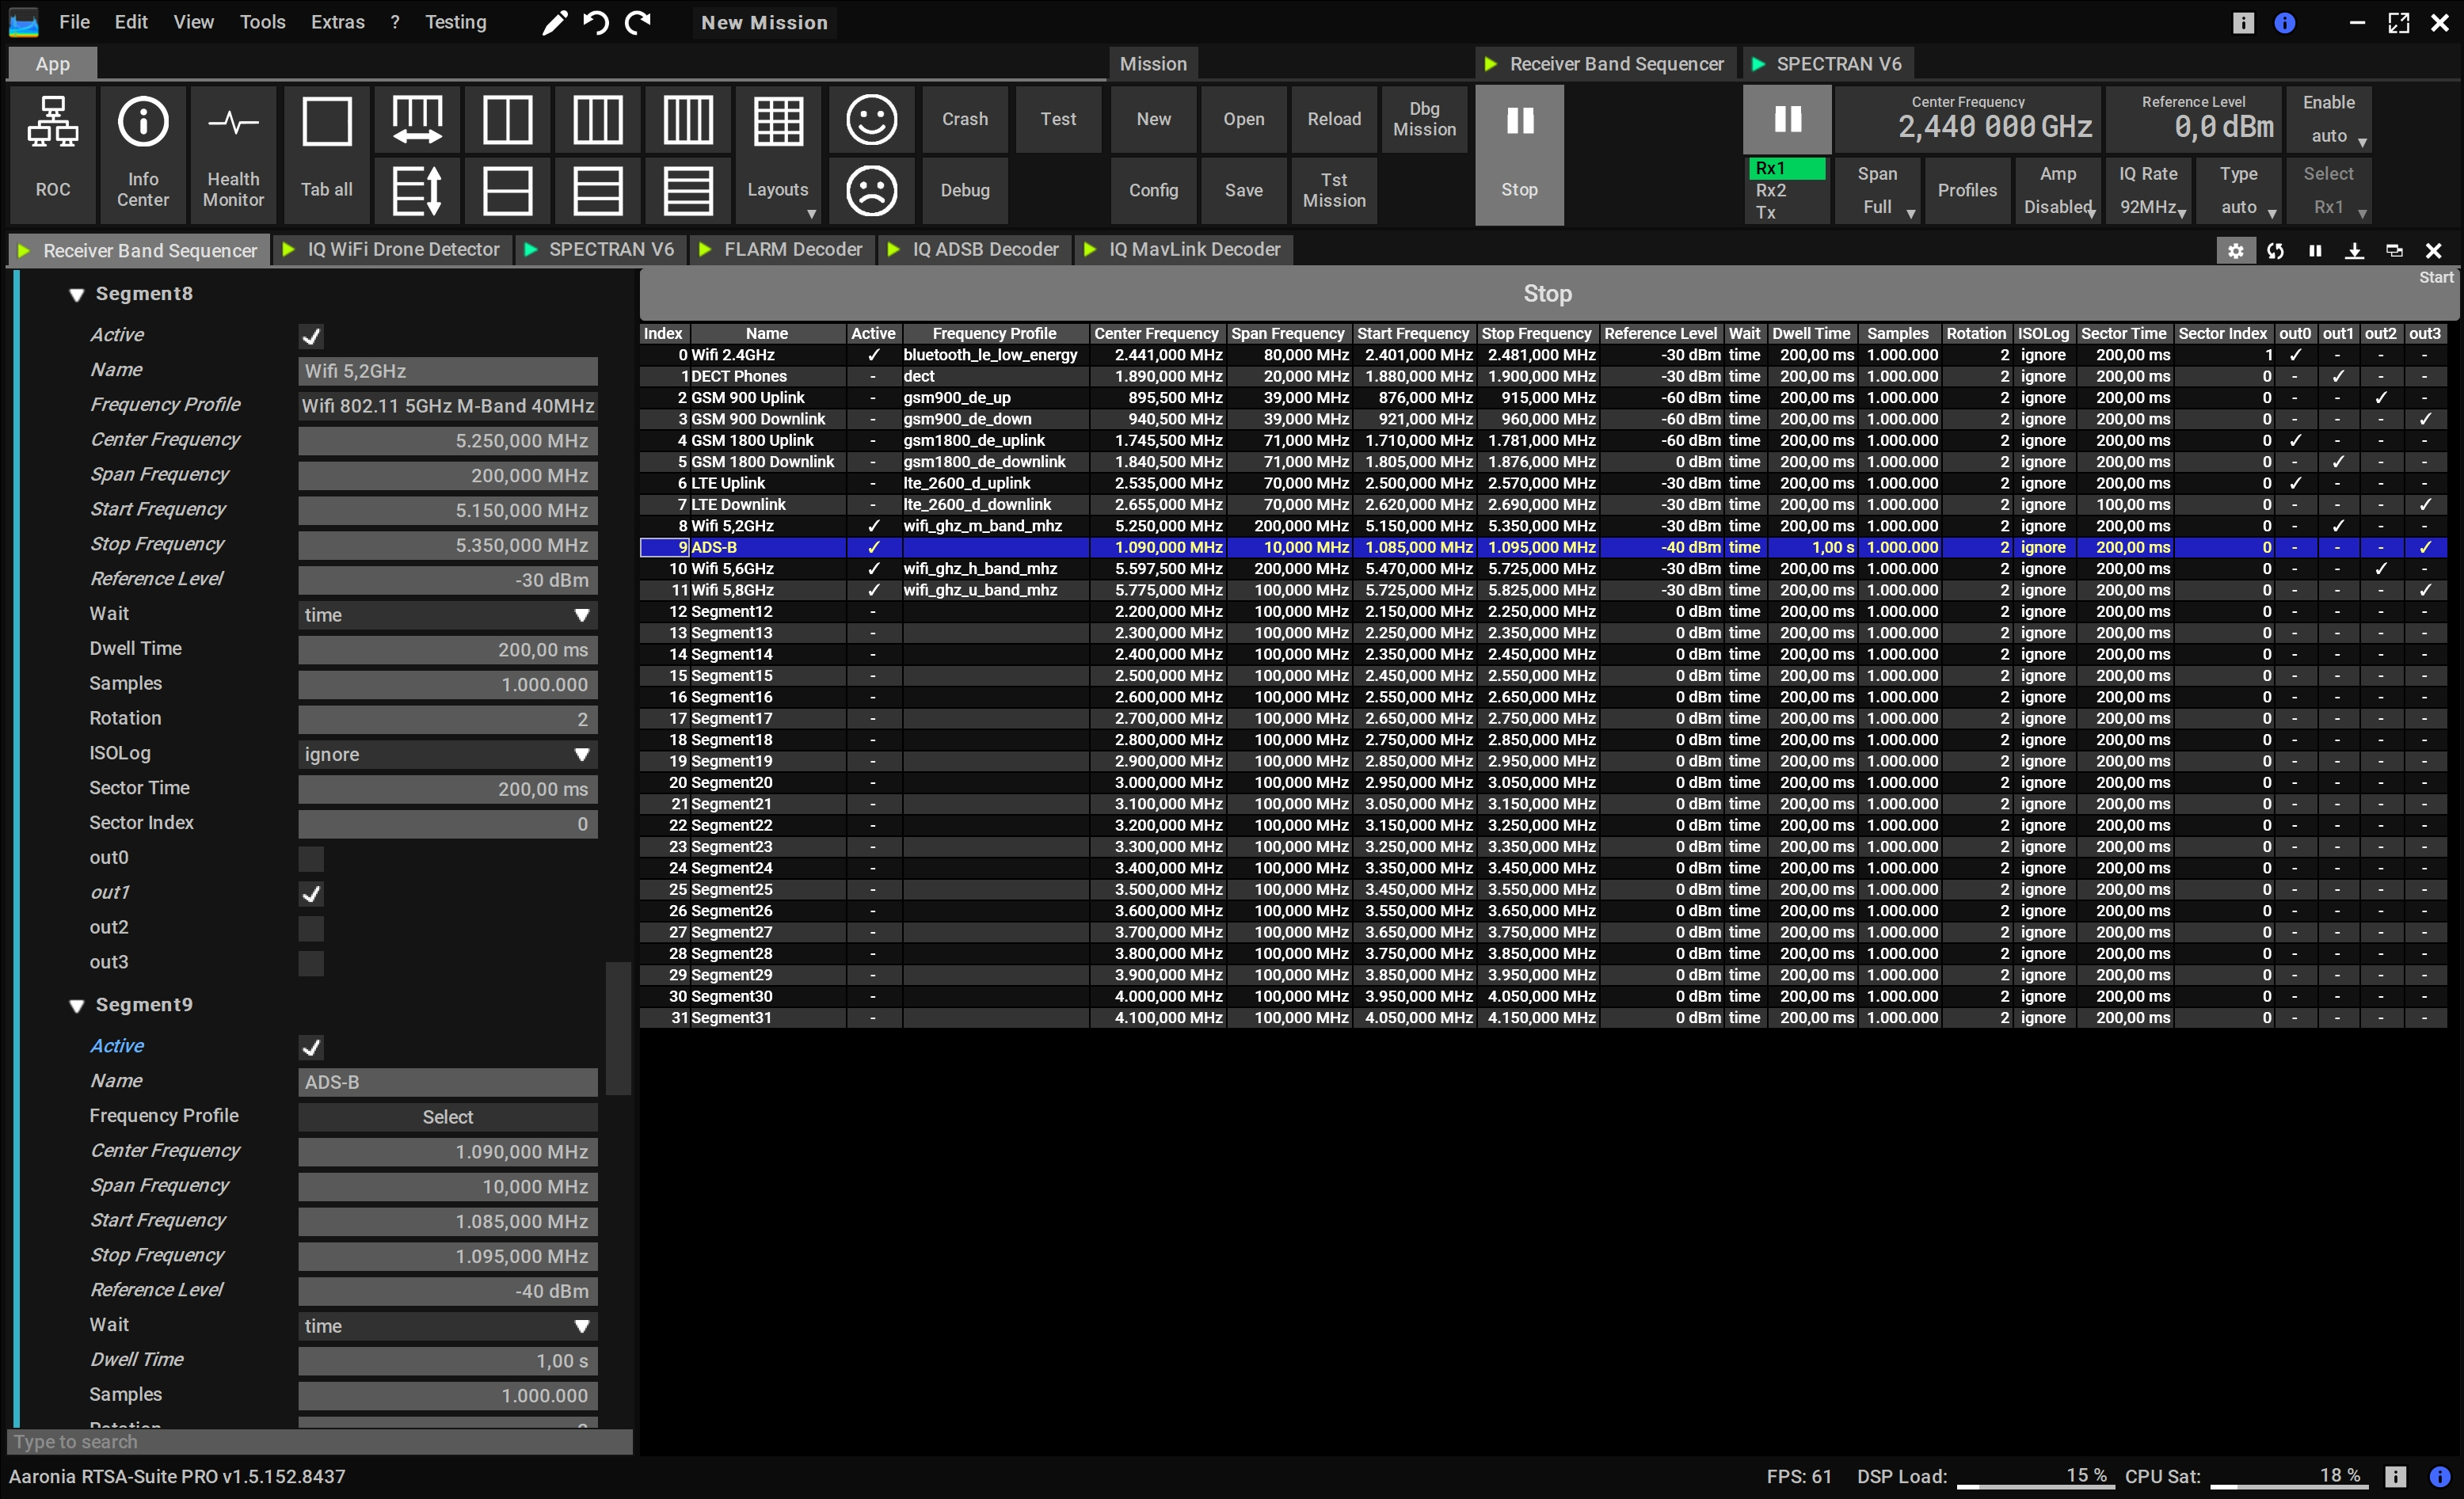 Typical Mission for the Receiver Band Sequencer